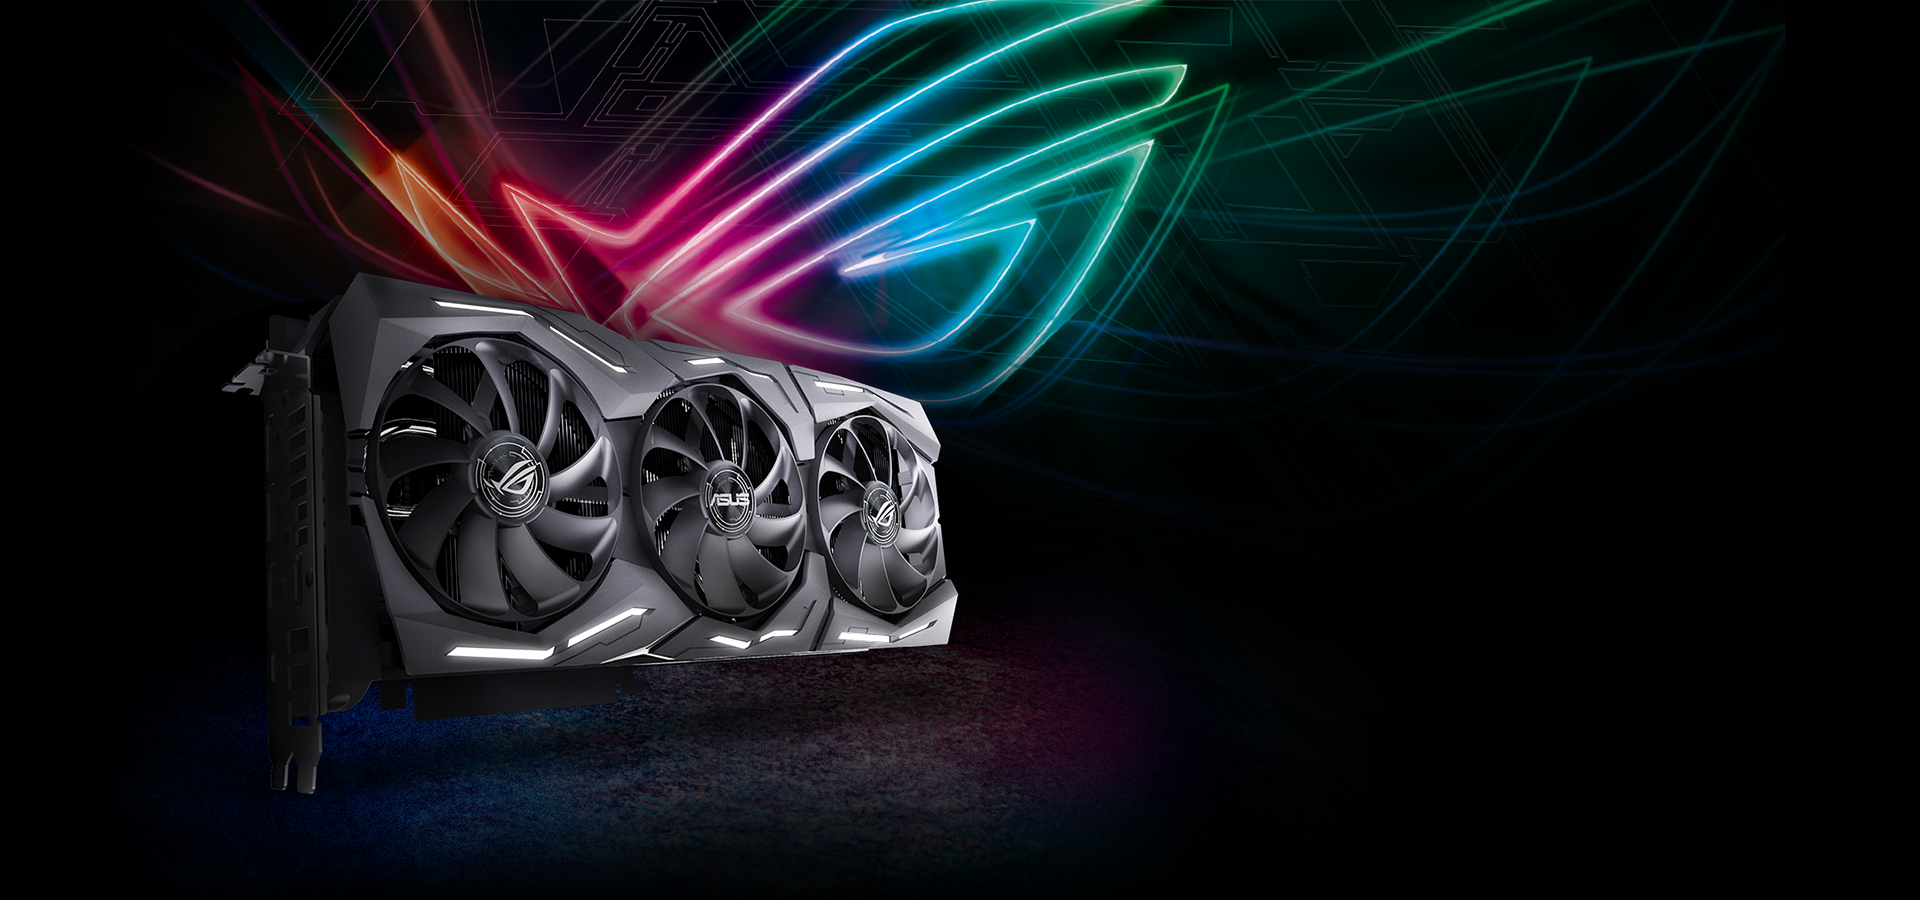 asus-warns-of-rog-strix-radeon-rx-5700-series-thermal-issues-and-points-to-amd